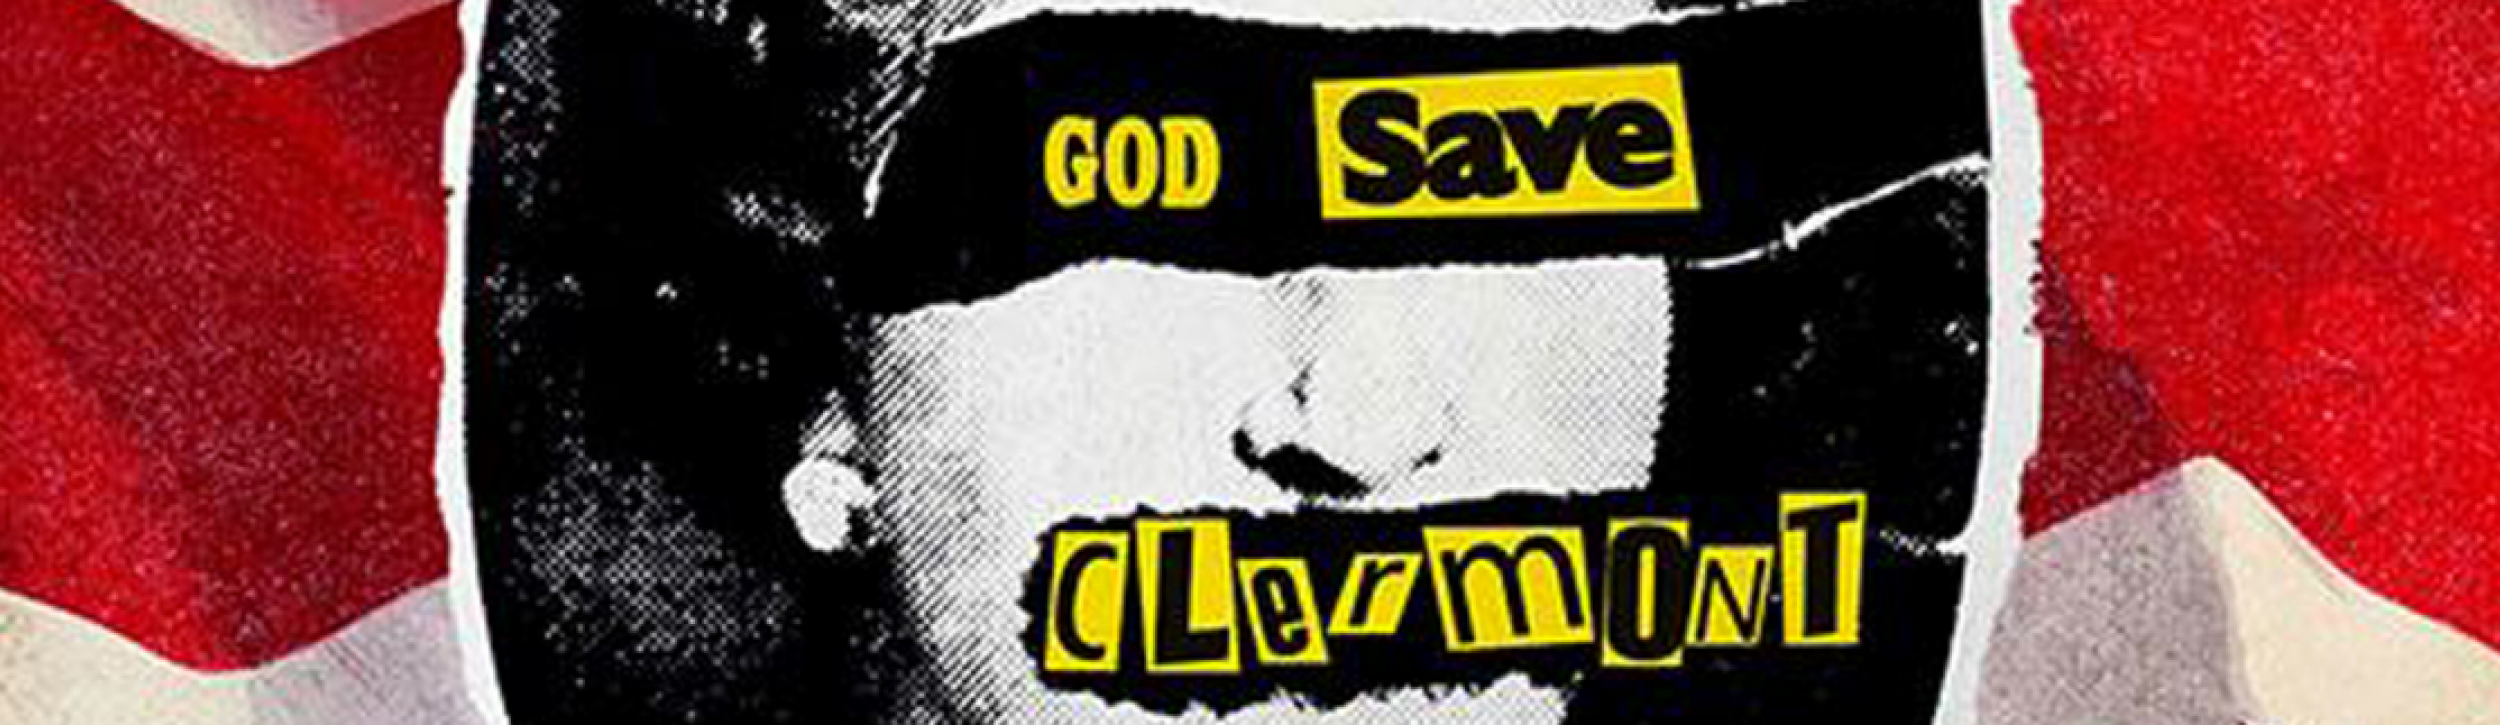 God Save Clermont